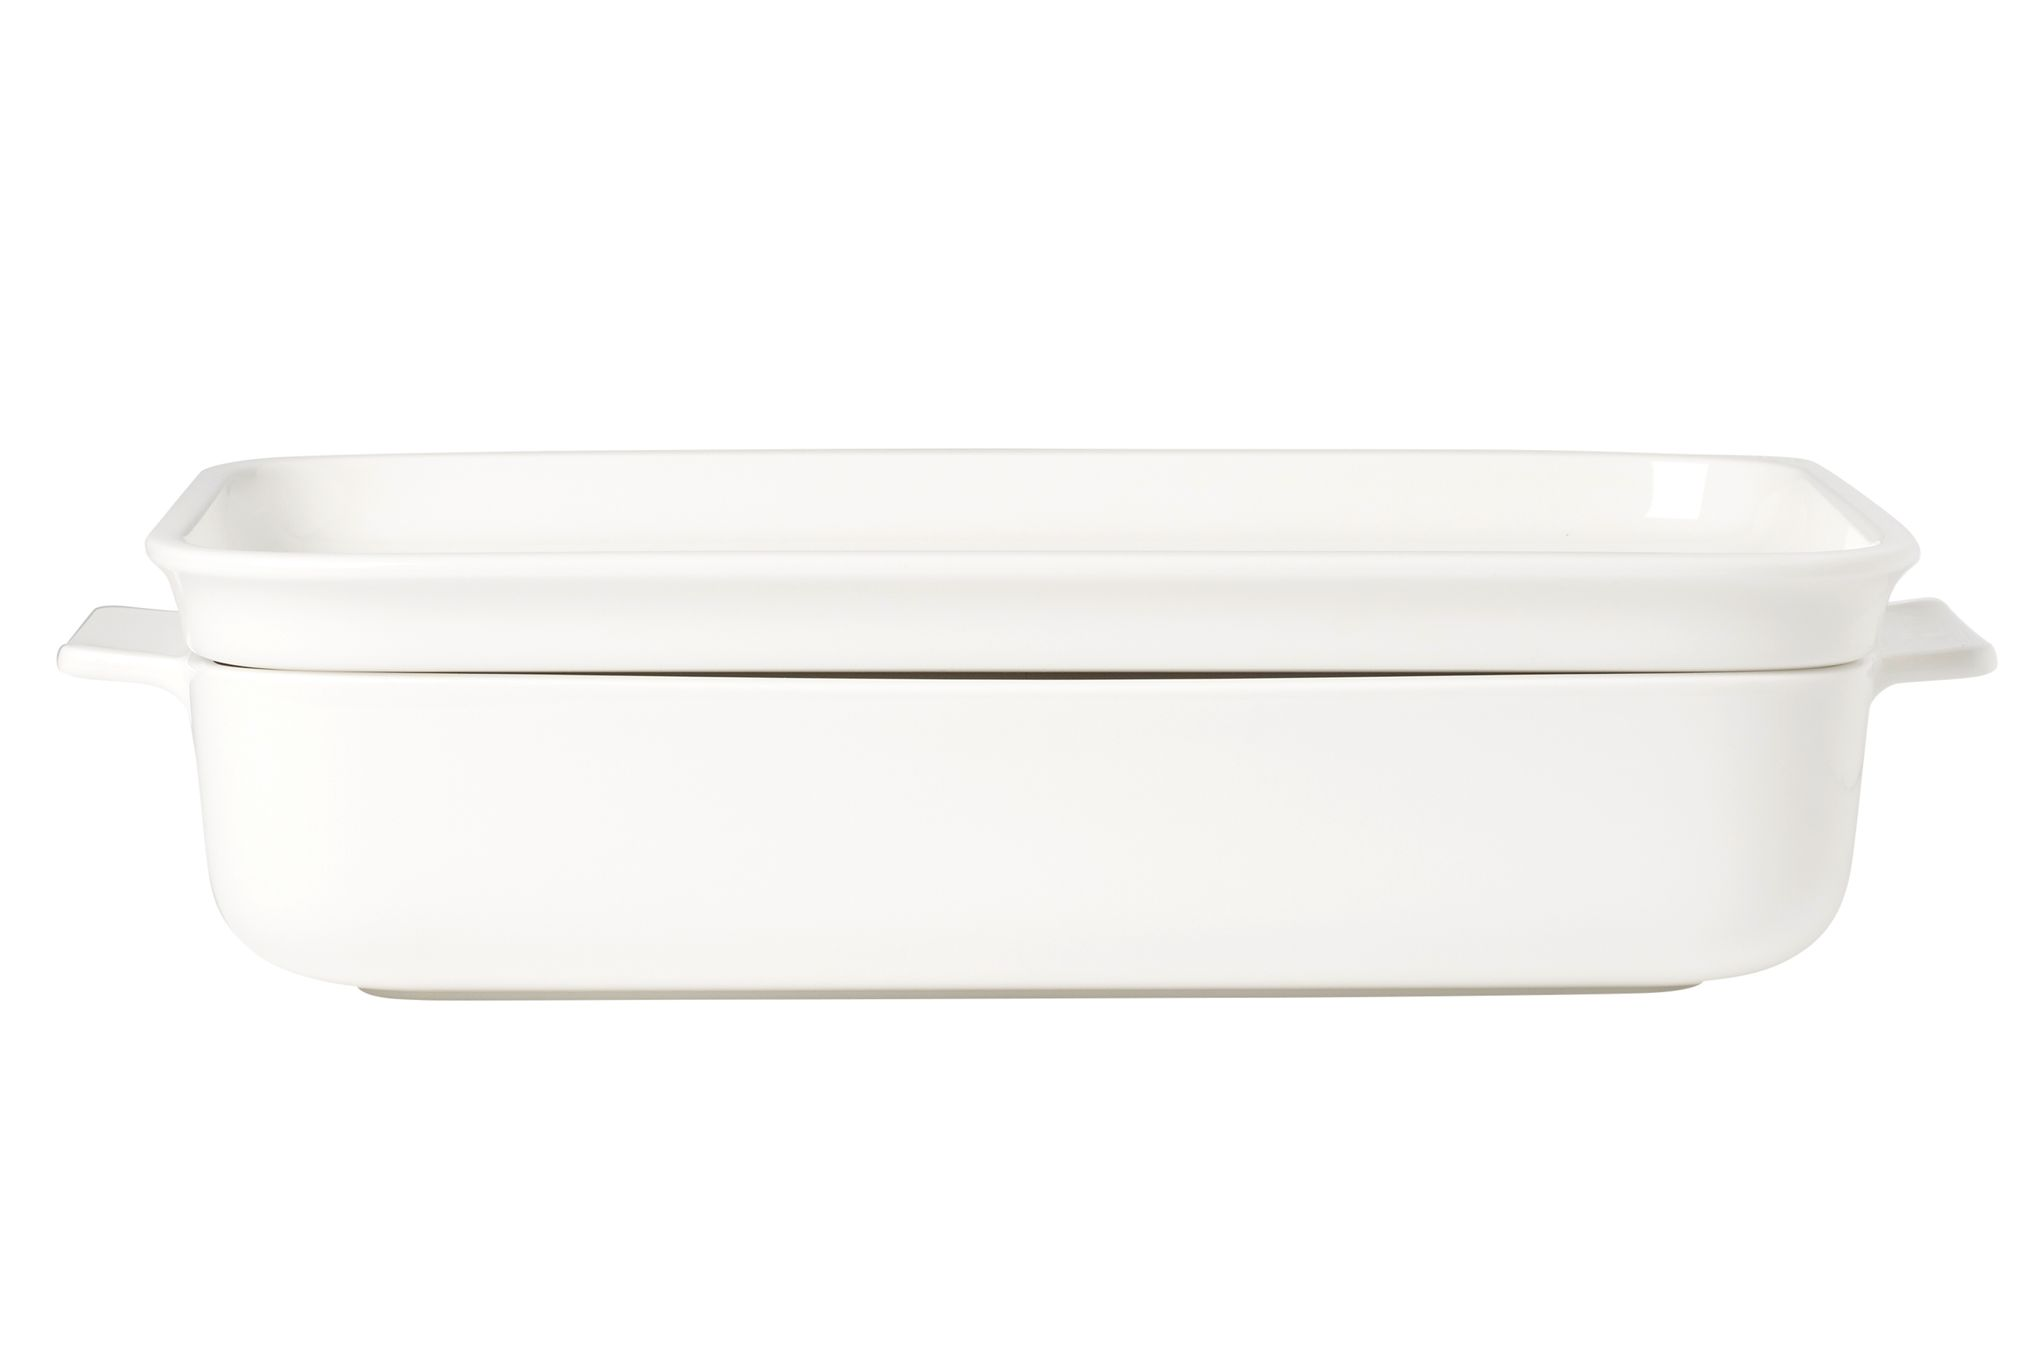 Villeroy & Boch Clever Cooking Baking Dish With lid 30 x 20cm thumb 2